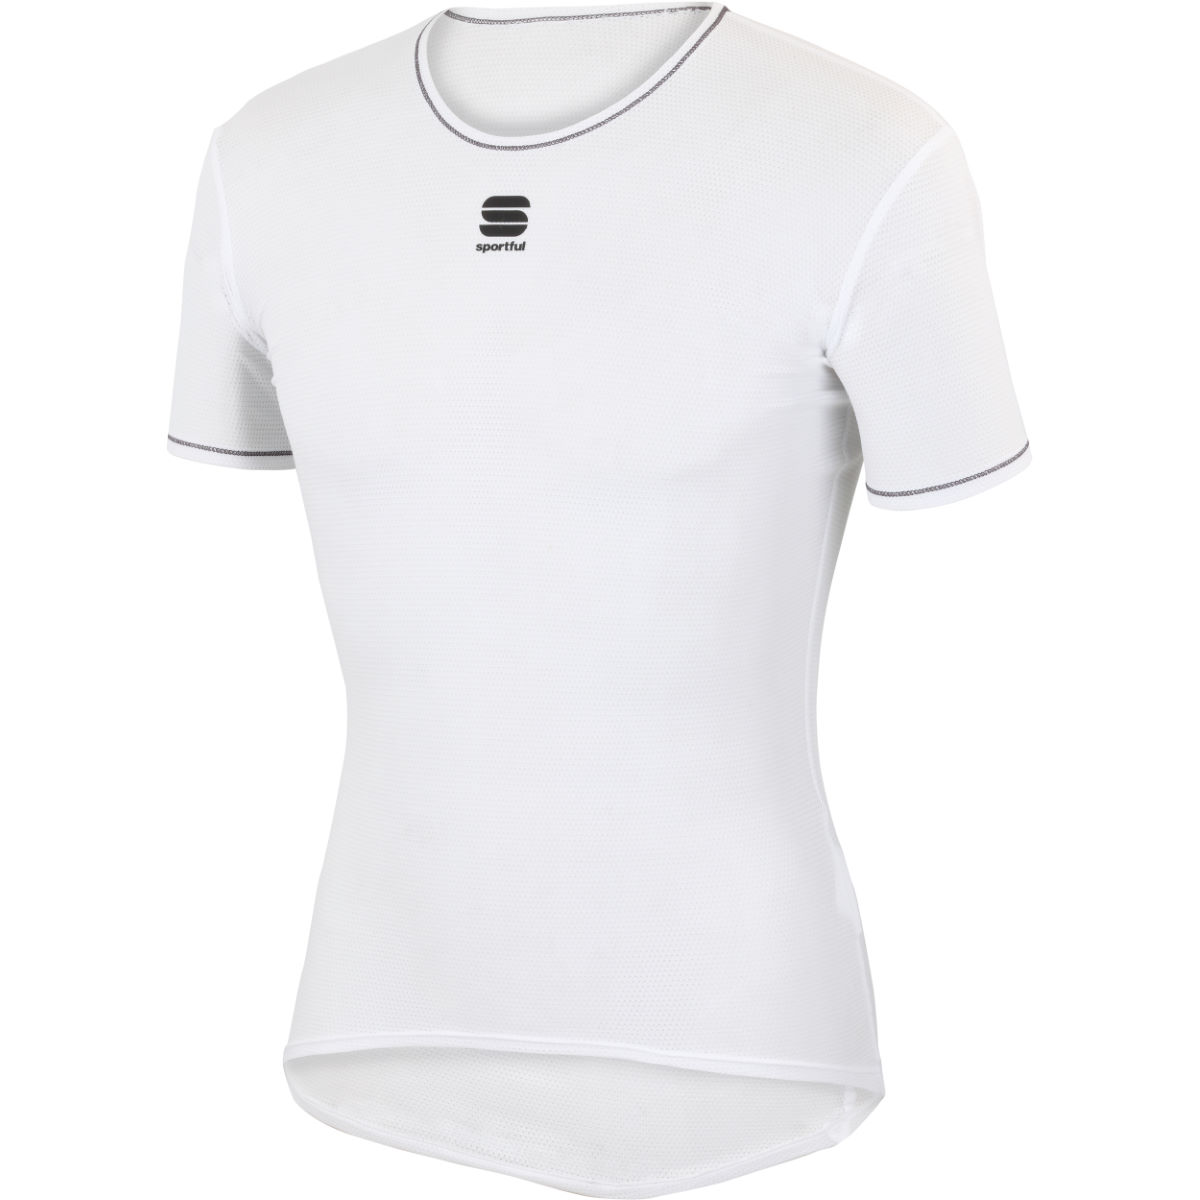 Sportful thermodynamic lite base layer base layers white ss15 0800255 101